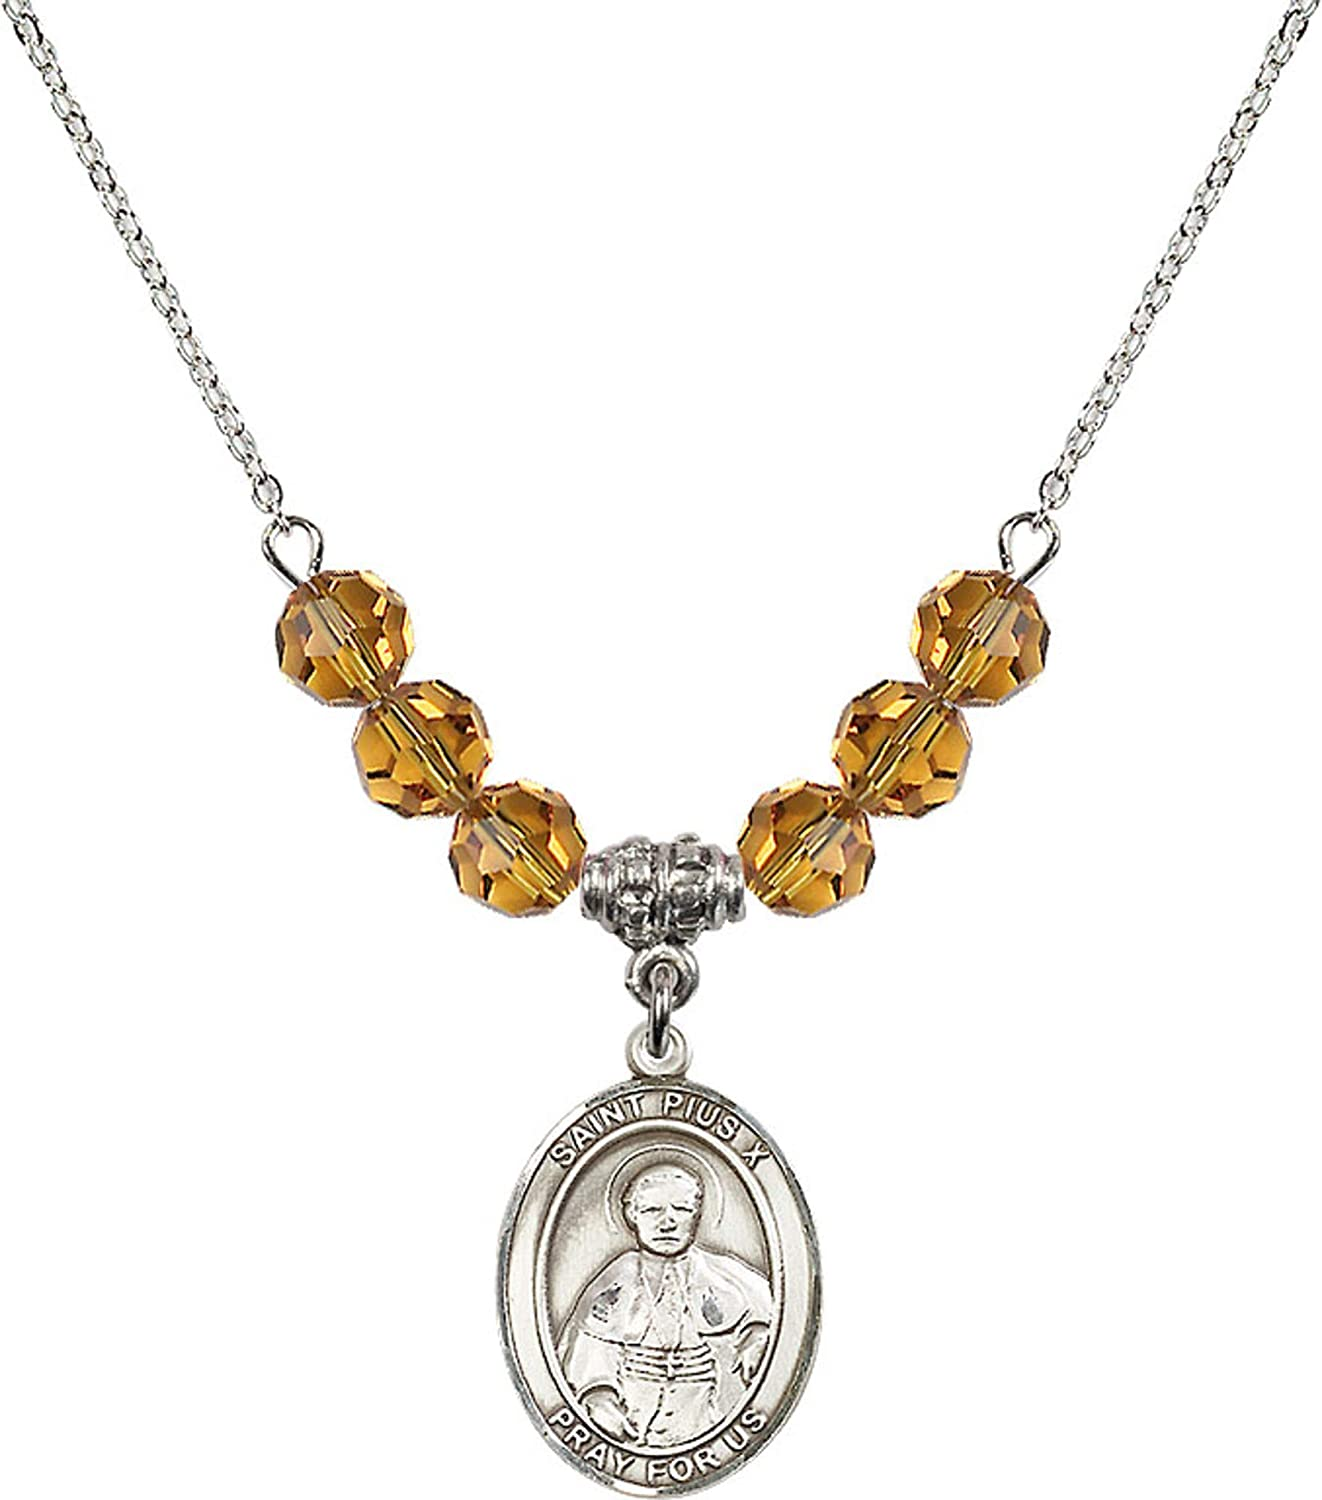 Bonyak Jewelry 18 Inch Rhodium Plated Necklace w// 6mm Yellow November Birth Month Stone Beads and Saint Pius X Charm